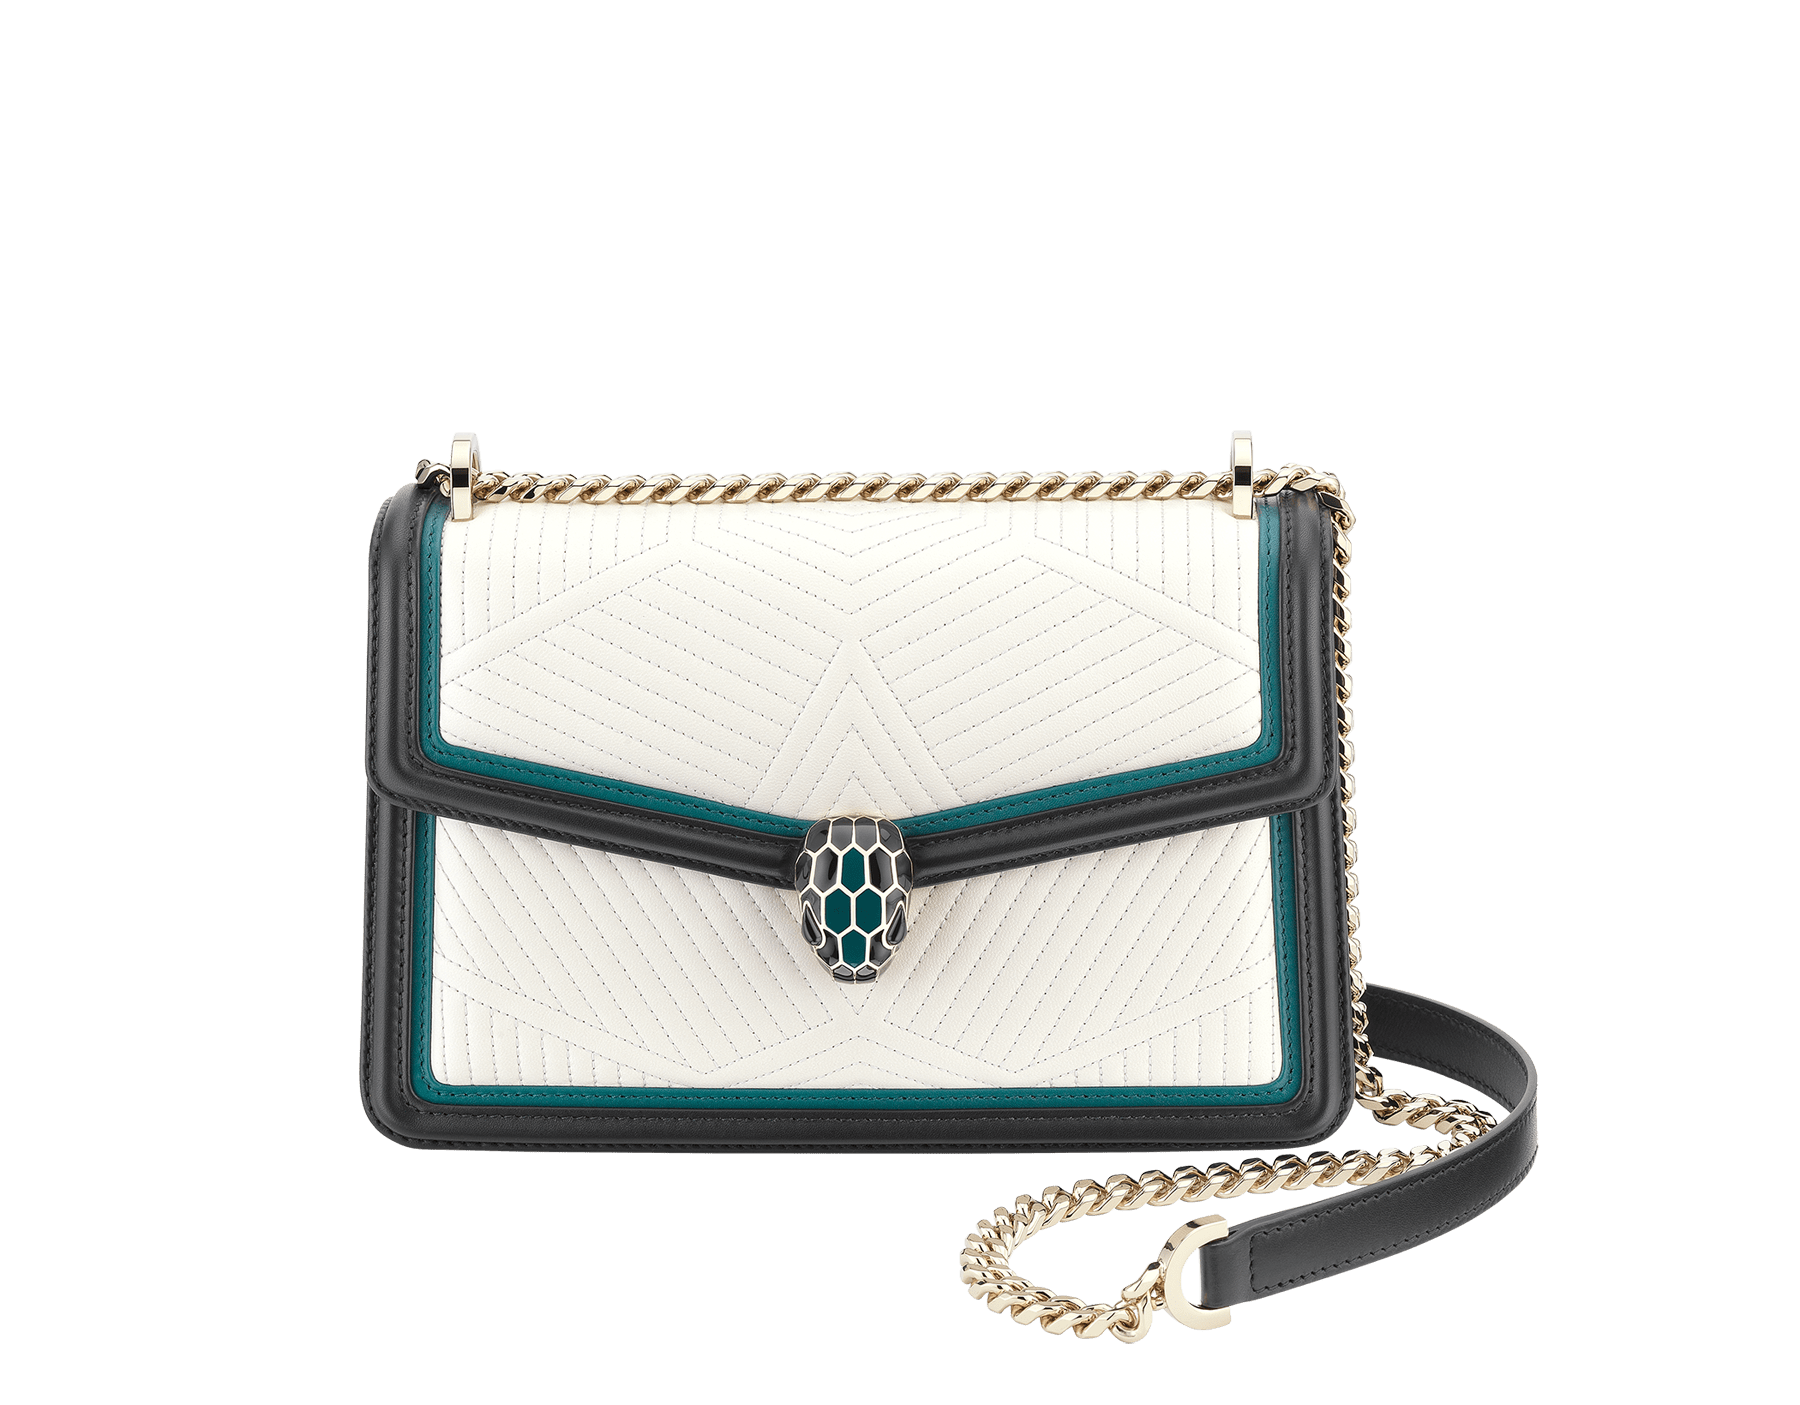 Serpenti Diamond Blast shoulder bag in white agate quilted nappa leather body and deep jade and black calf leather frames. Snakehead closure in light gold plated brass decorated with deep jade and black enamel, and black onyx eyes. 287970 image 1